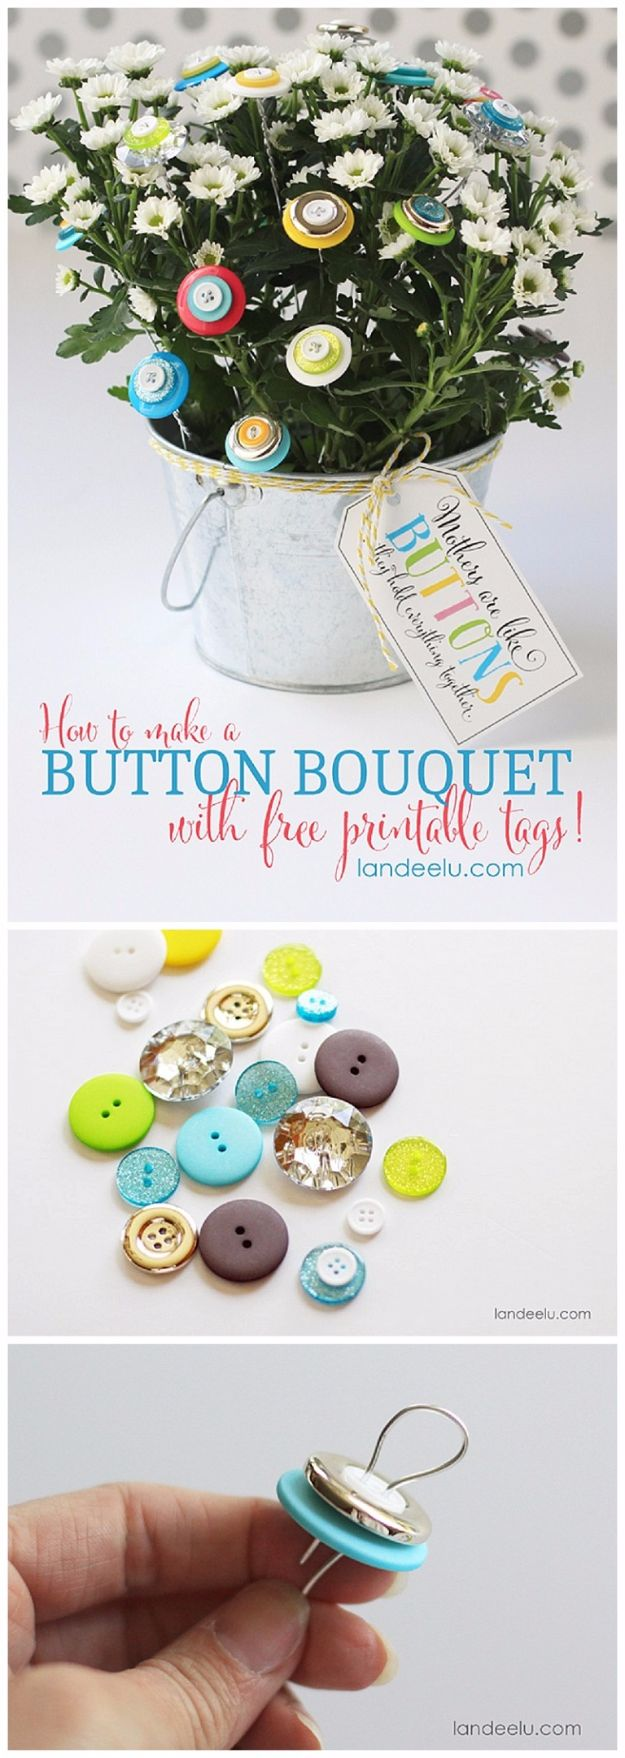 DIY Mothers Day Gift Ideas - Button Bouquet - Homemade Gifts for Moms - Crafts and Do It Yourself Home Decor, Accessories and Fashion To Make For Mom - Mothers Love Handmade Presents on Mother's Day - DIY Projects and Crafts by DIY JOY